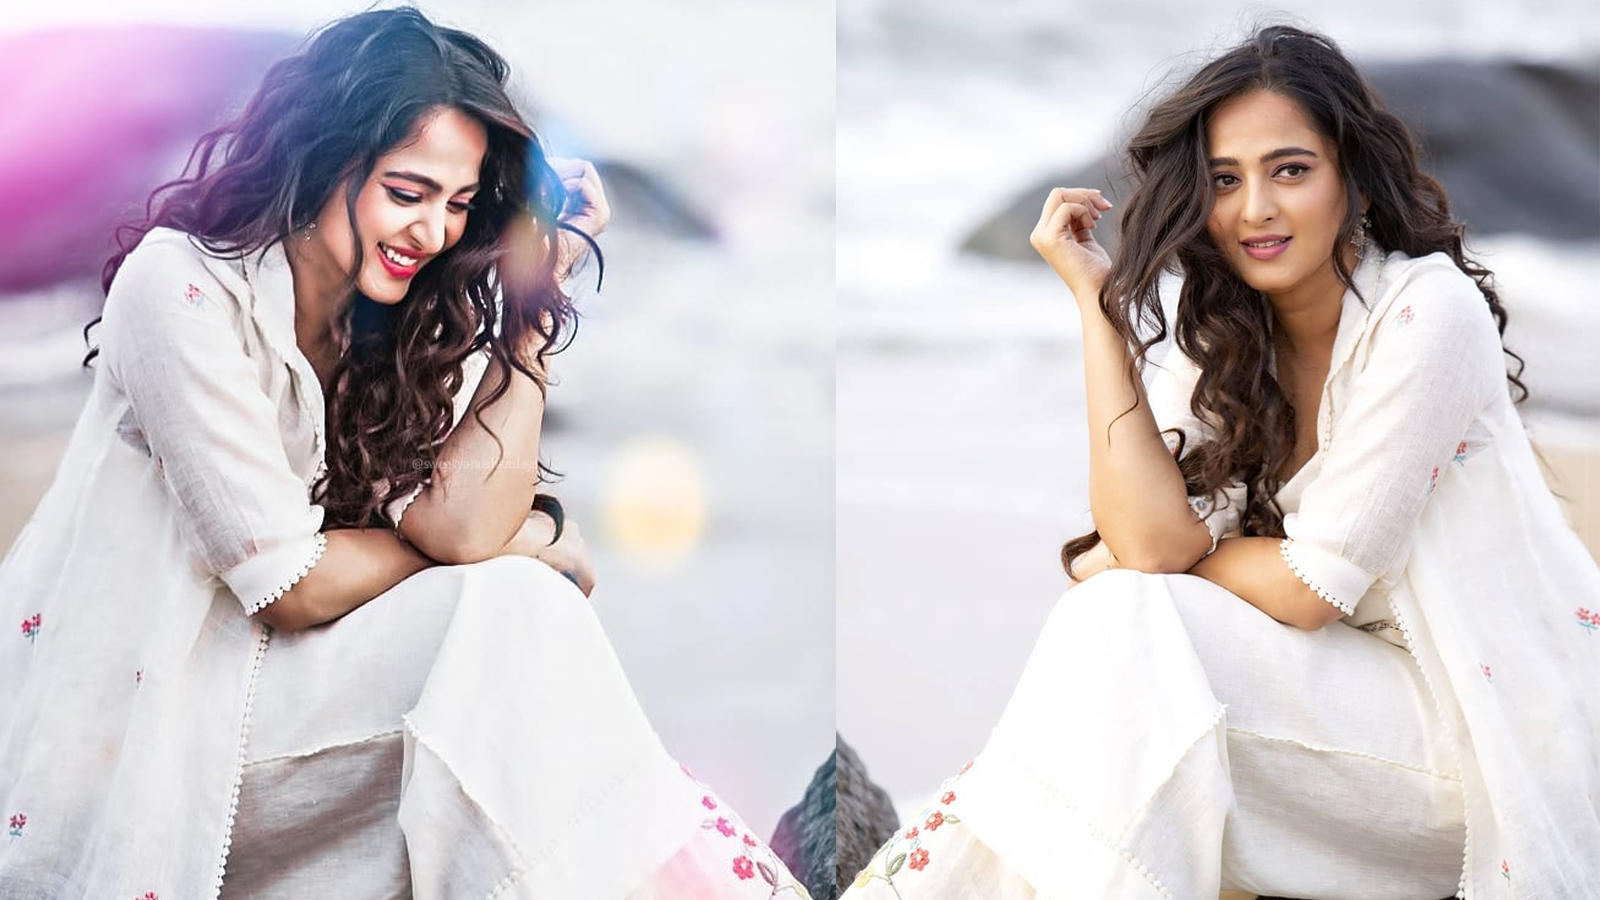 'Baahubali' actress Anushka Shetty looks drop-dead gorgeous post makeover